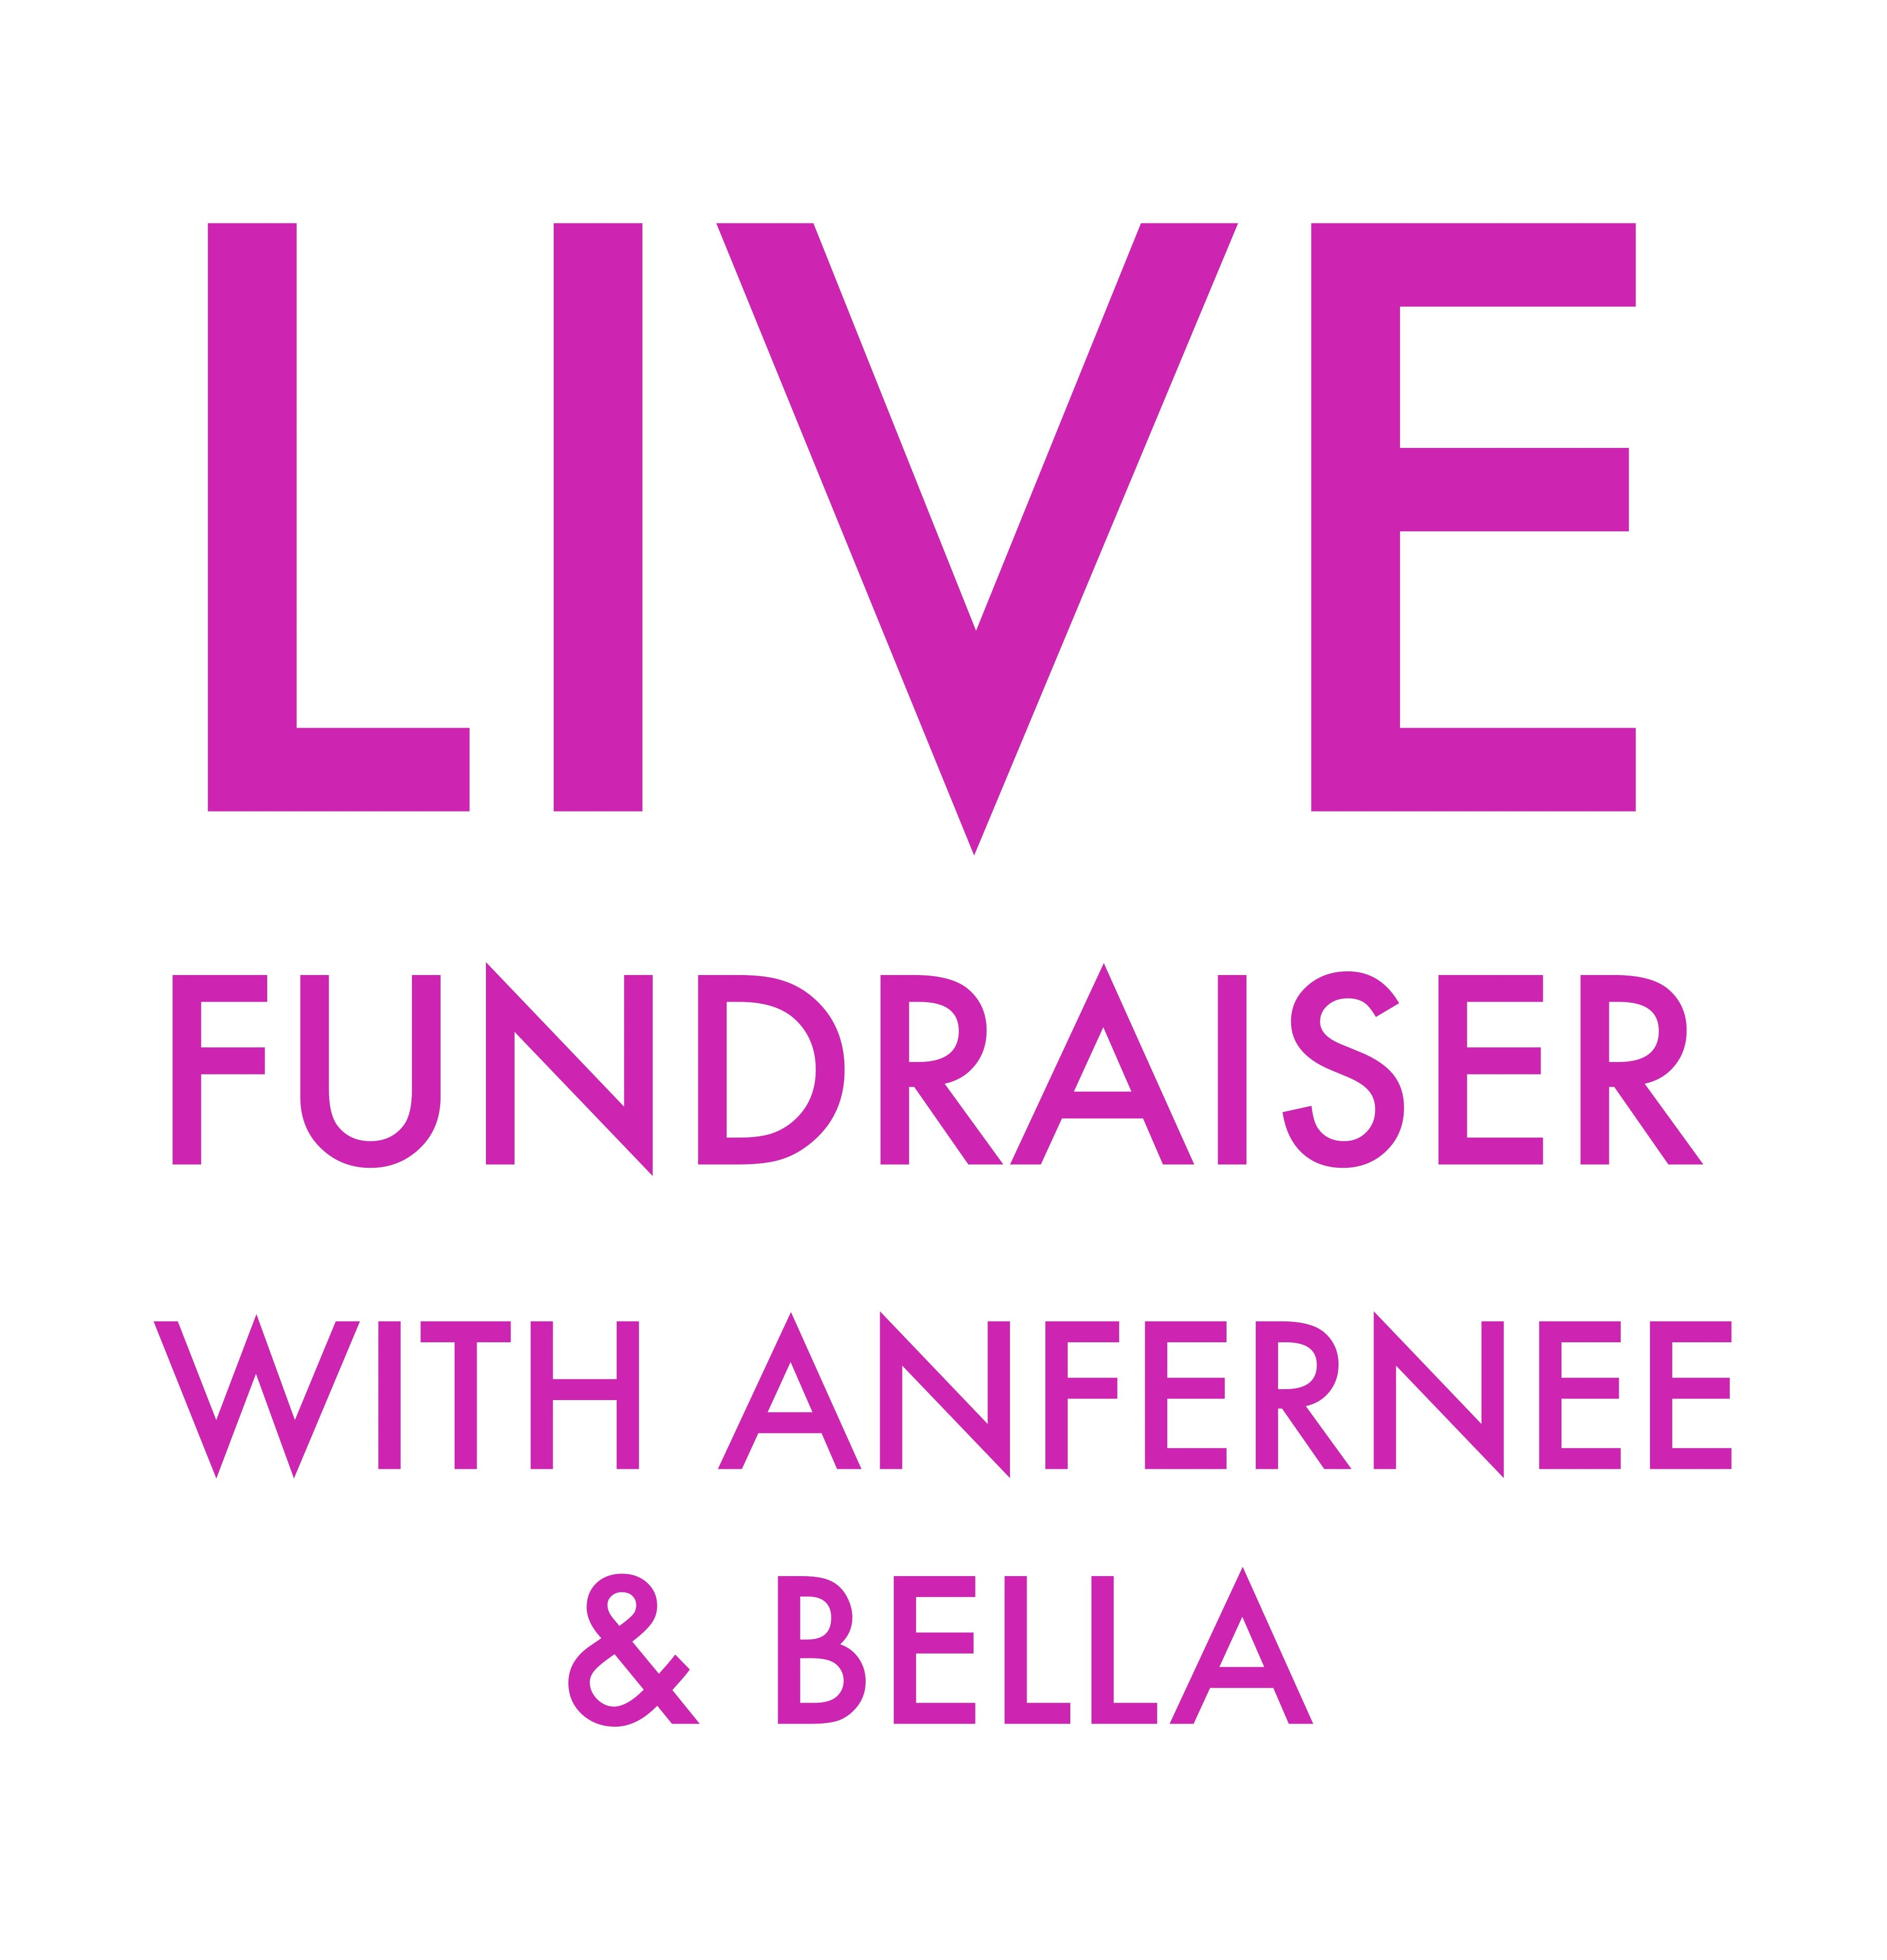 LIVE Fundraiser with Anfernee & Bella - Thursday Noon CST